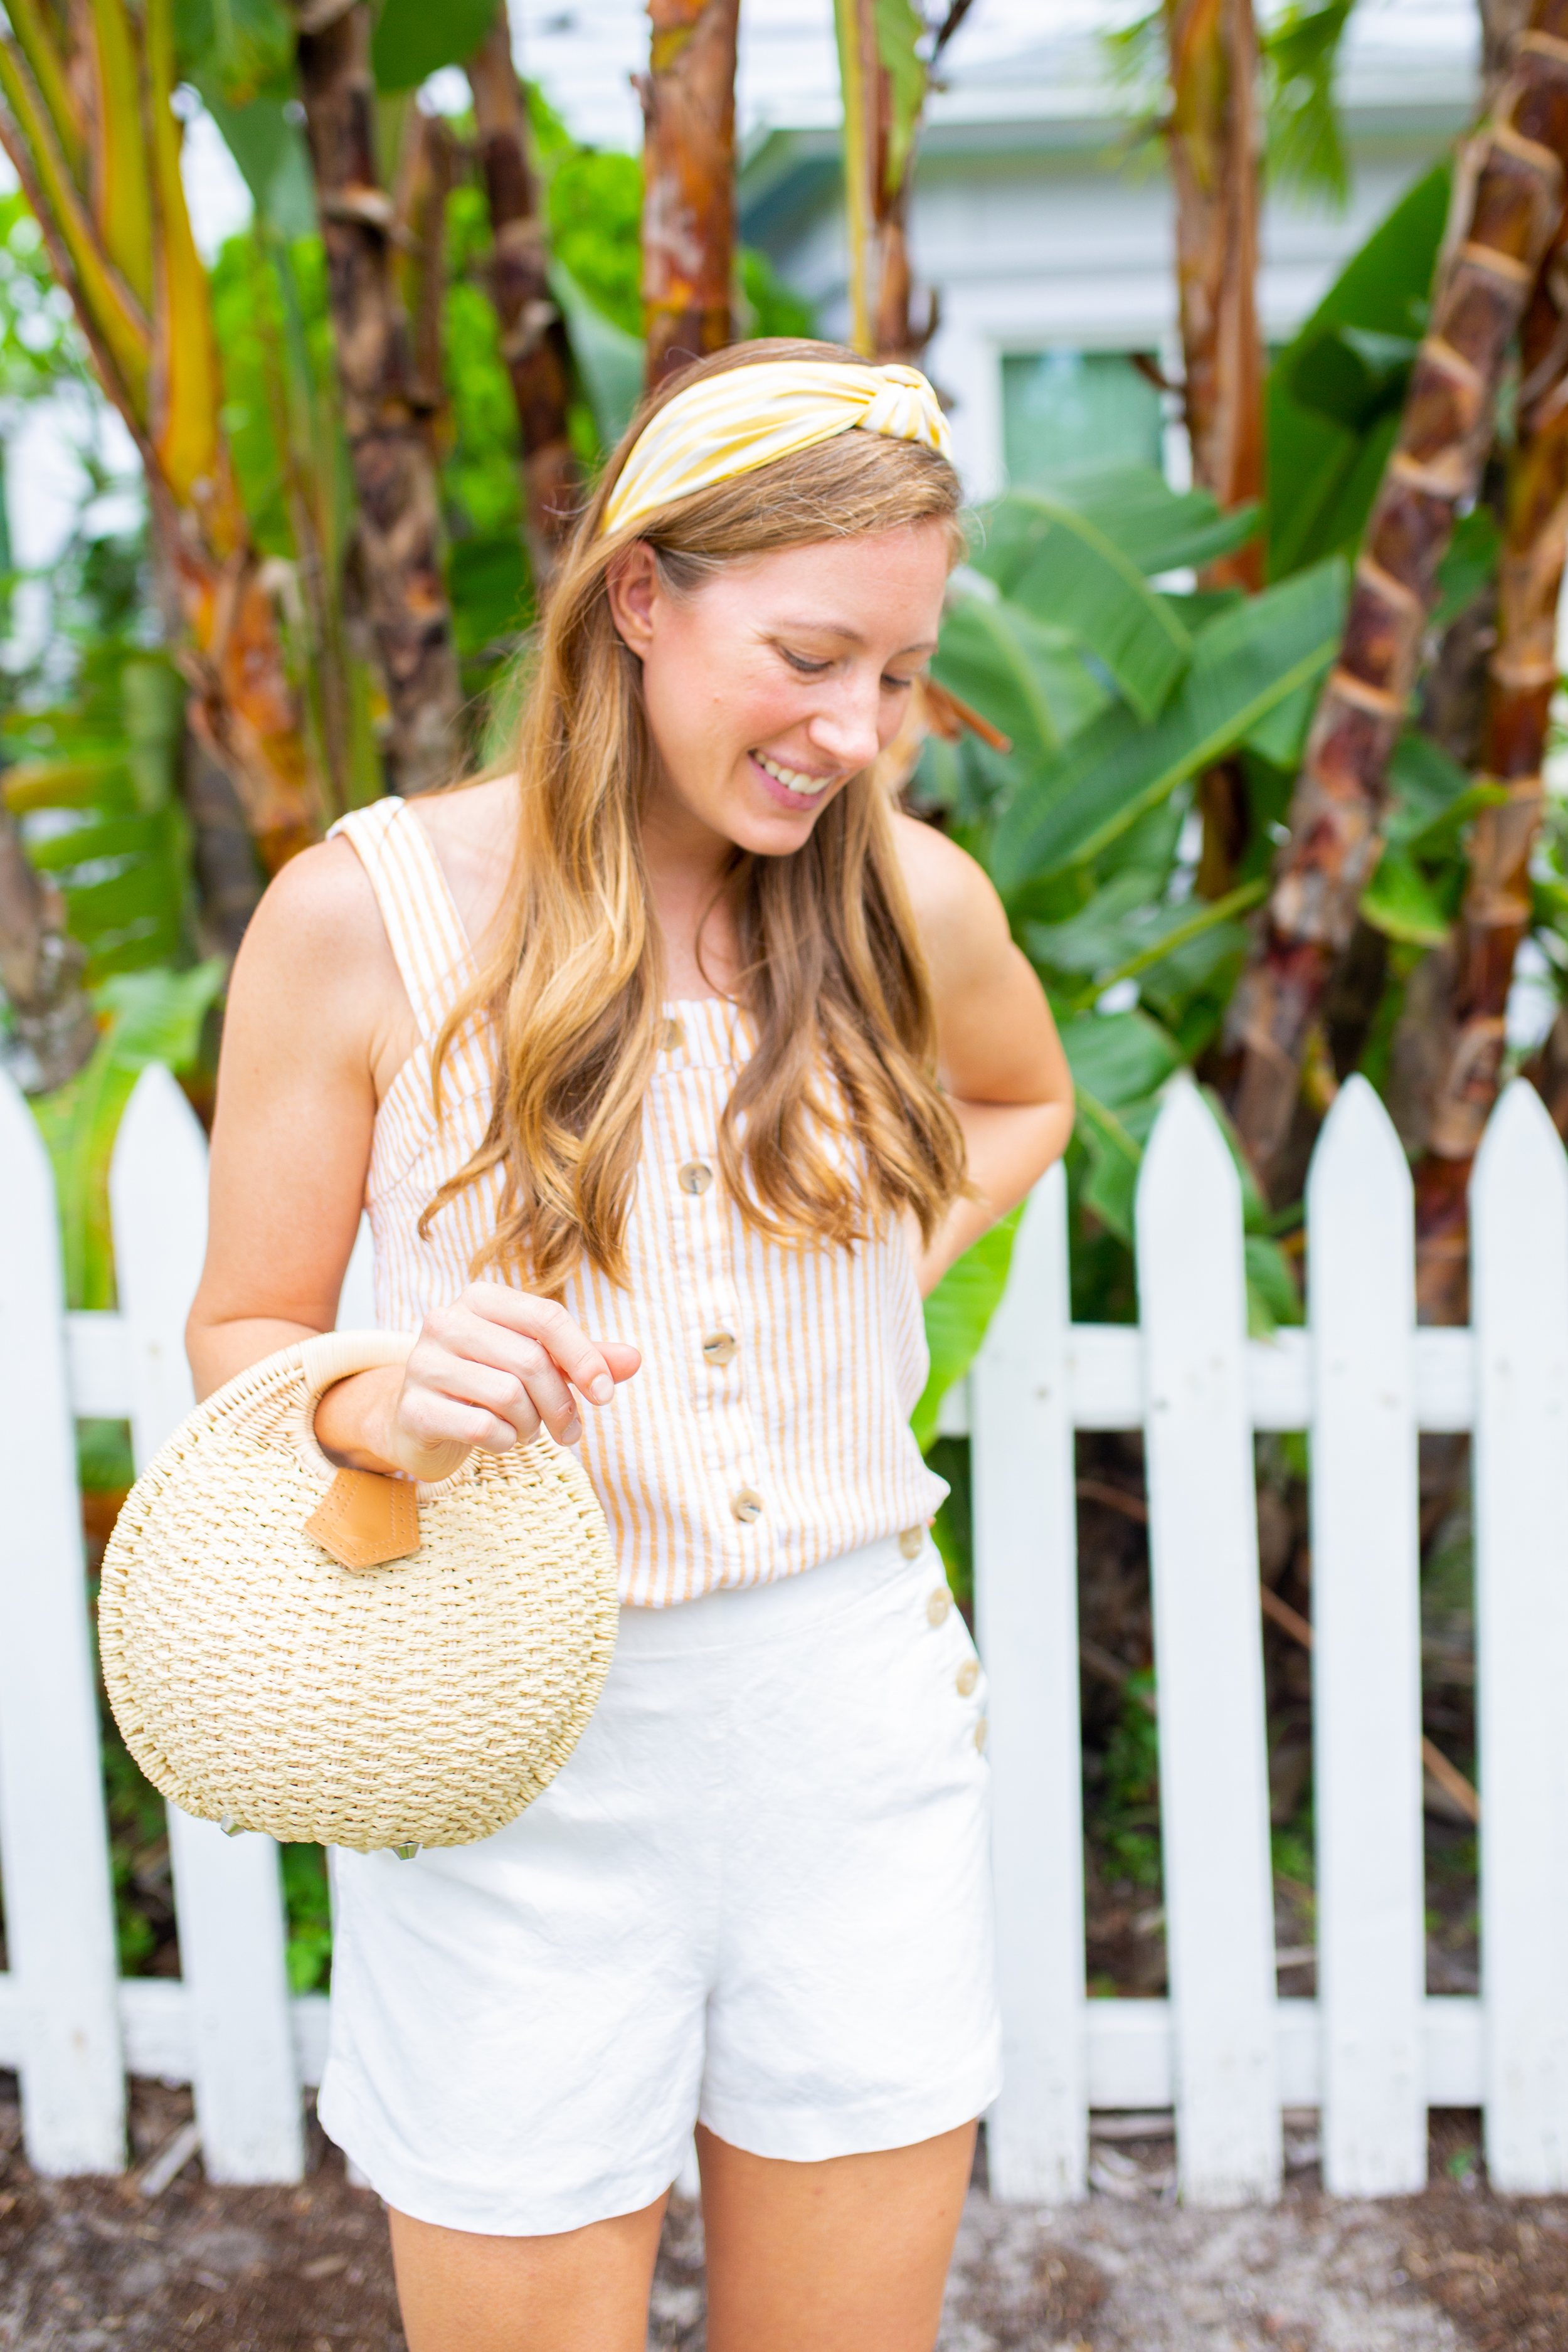 woman wearing Lightweight Tops for Summer and headband